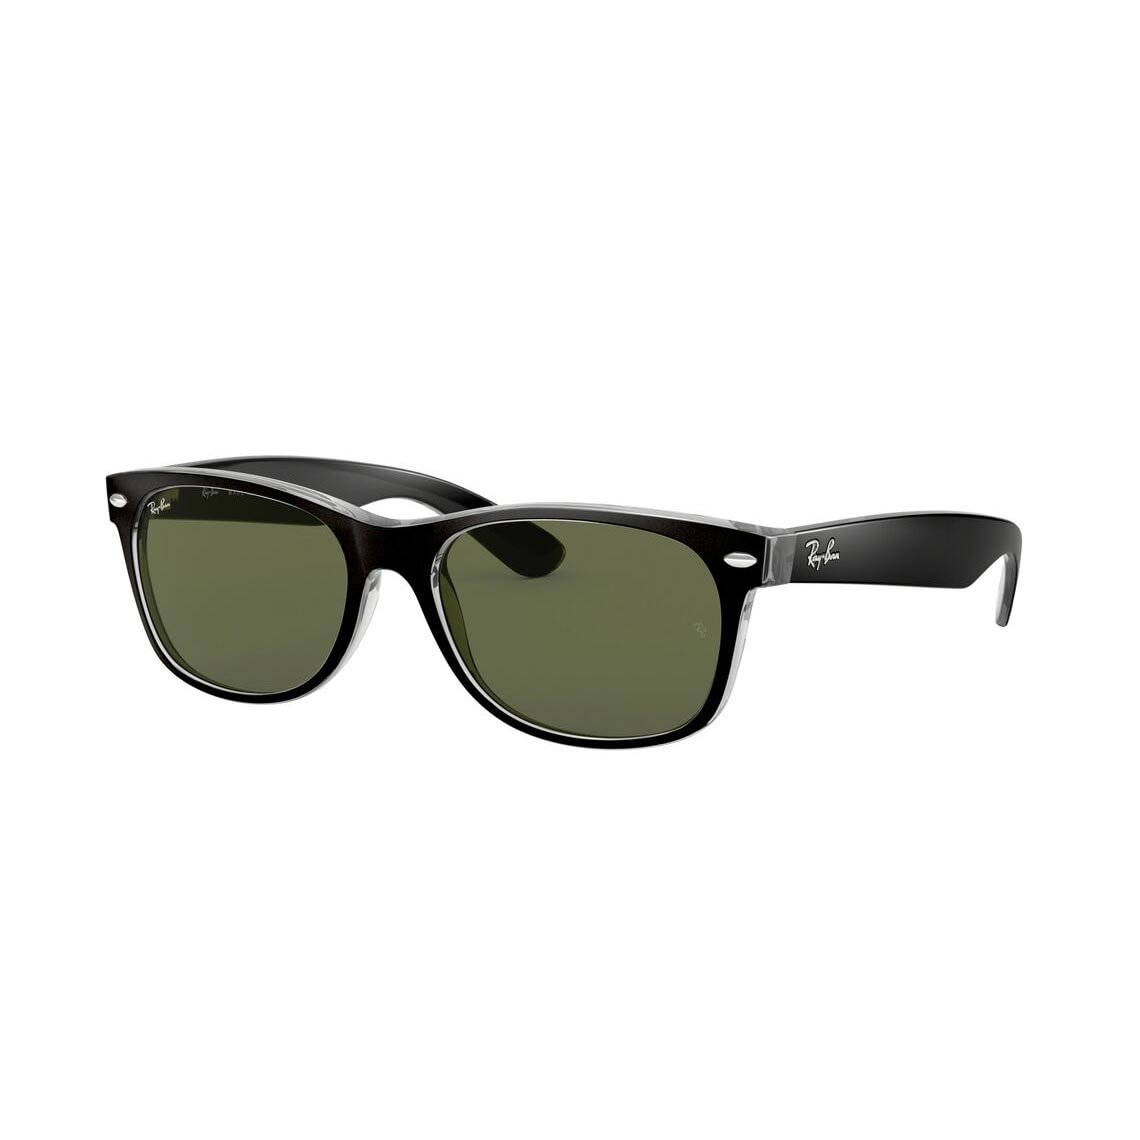 Ray-Ban New Wayfarer RB2132 6052 58